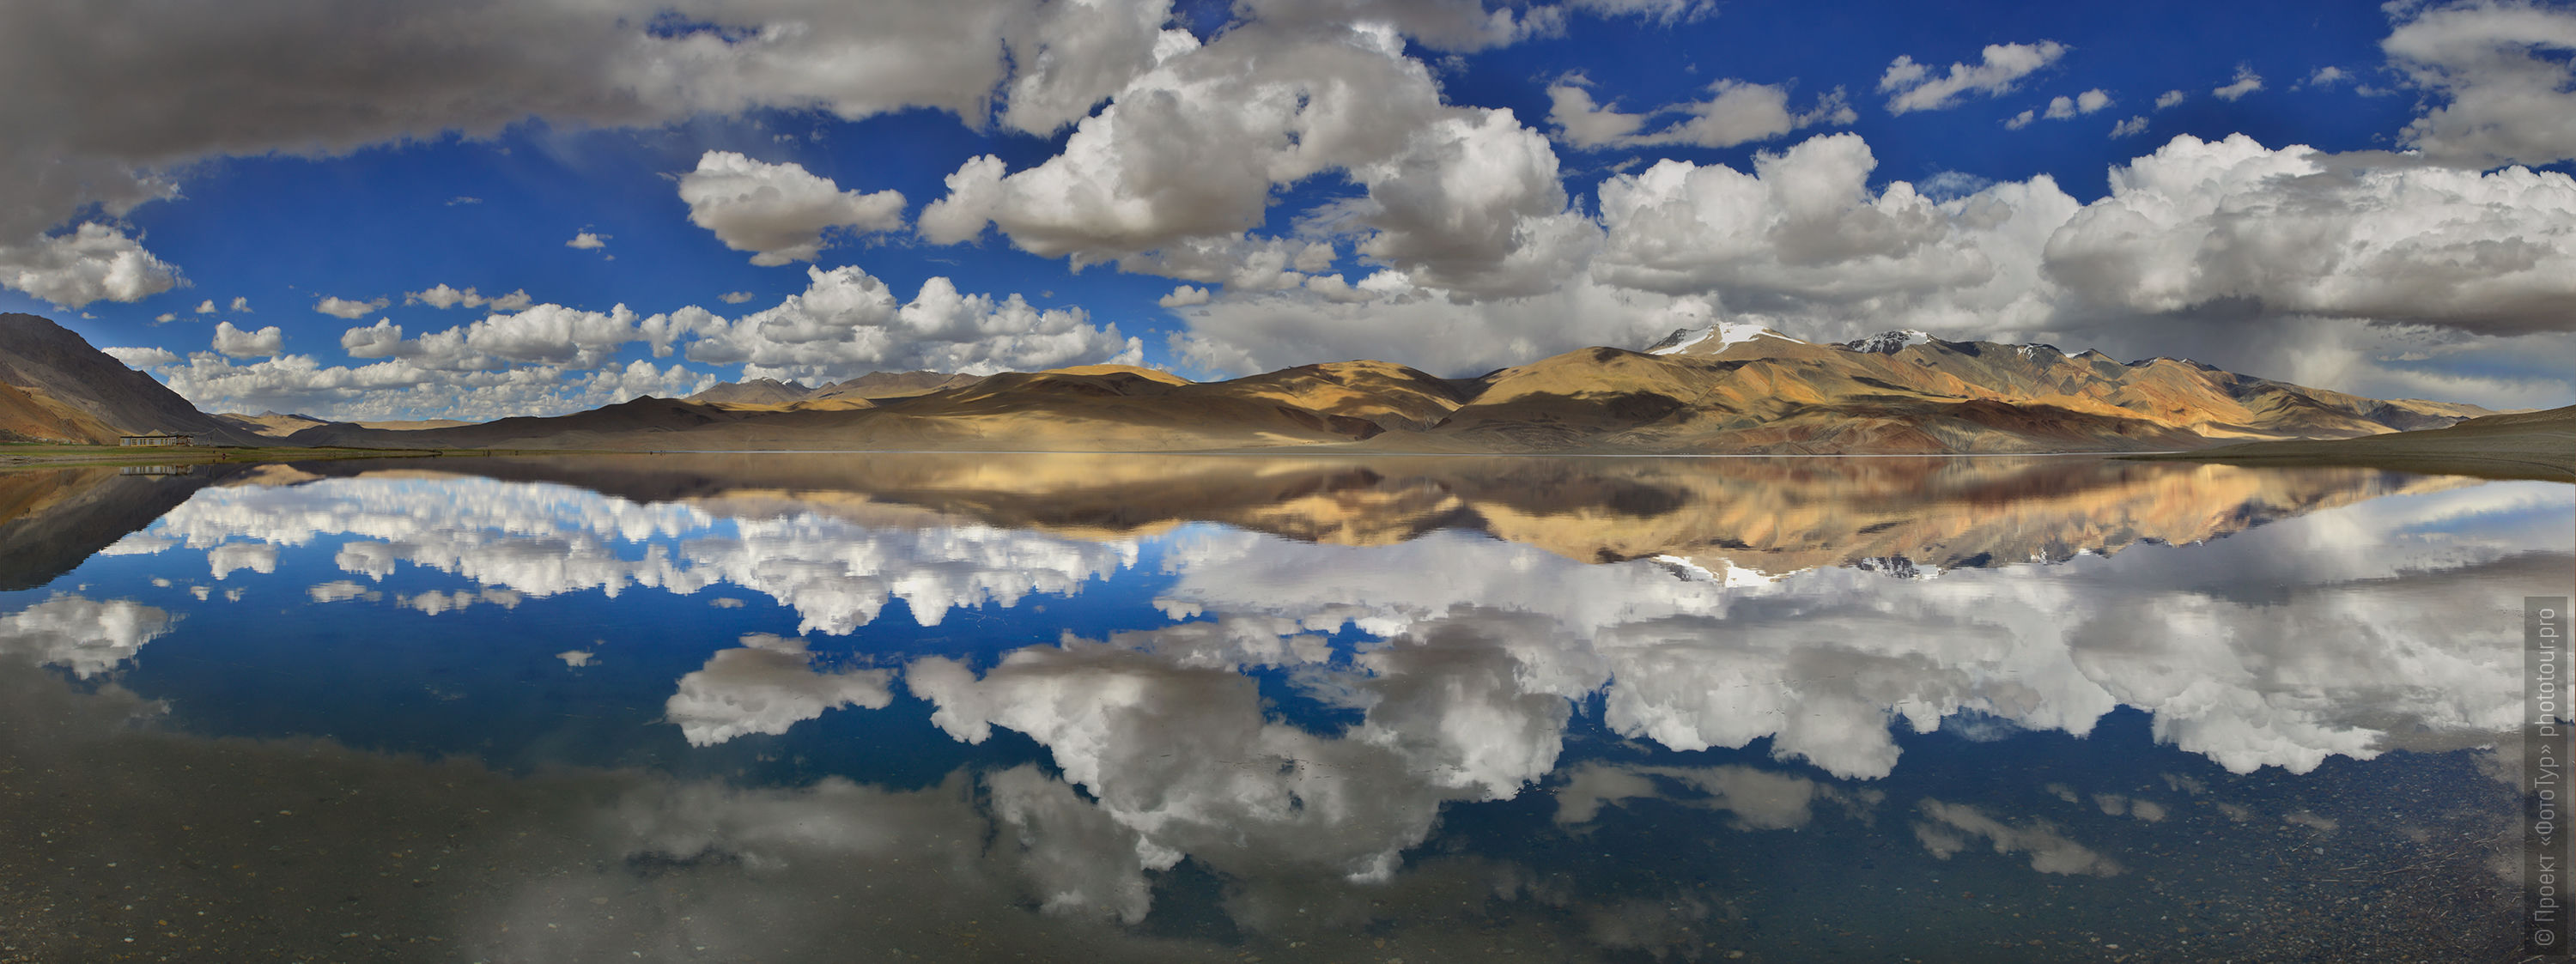 Mirror of Lake Tso Moriri, Karzok, Ladakh. Tour Tibet Lakeside Advertising: Alpine lakes, geyser valley, Lamayuru, Colored Mountains, 01 - 10.09. 2021 year.